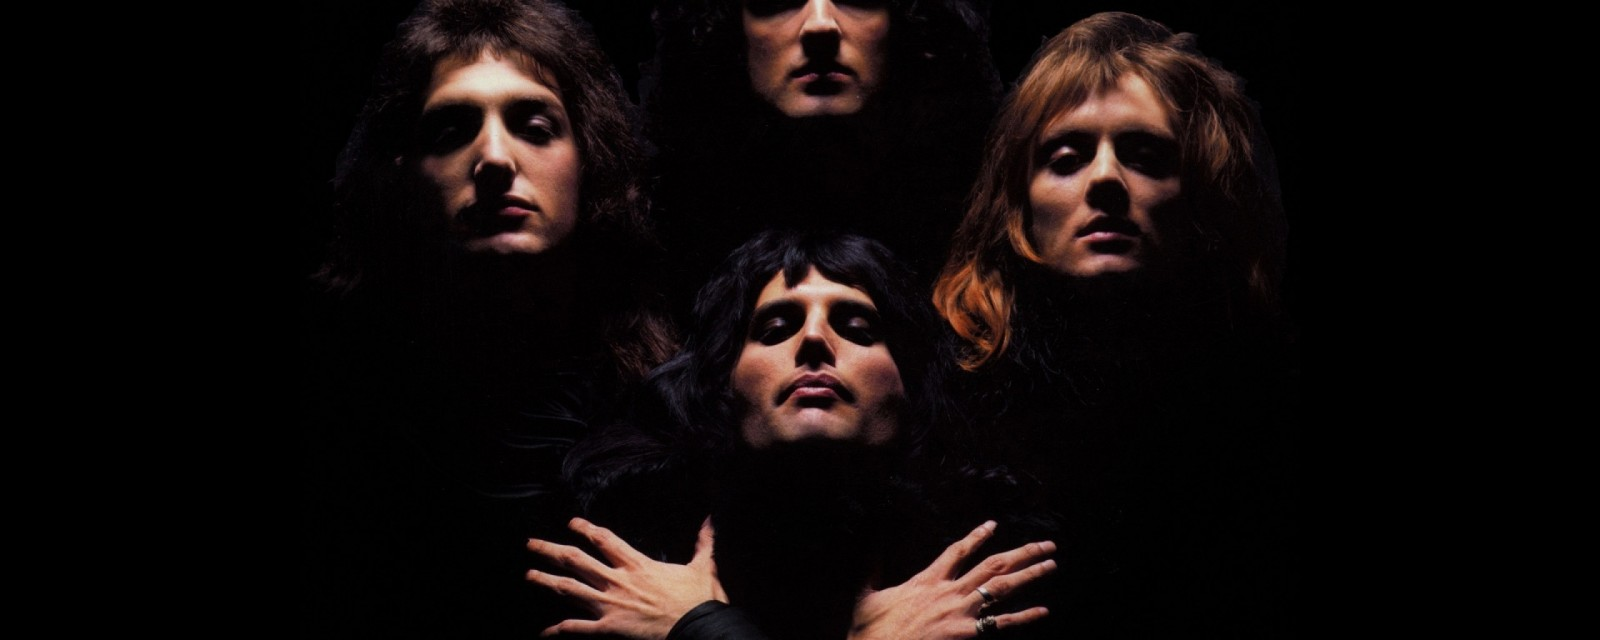 Rock royalty was born 45 years ago today